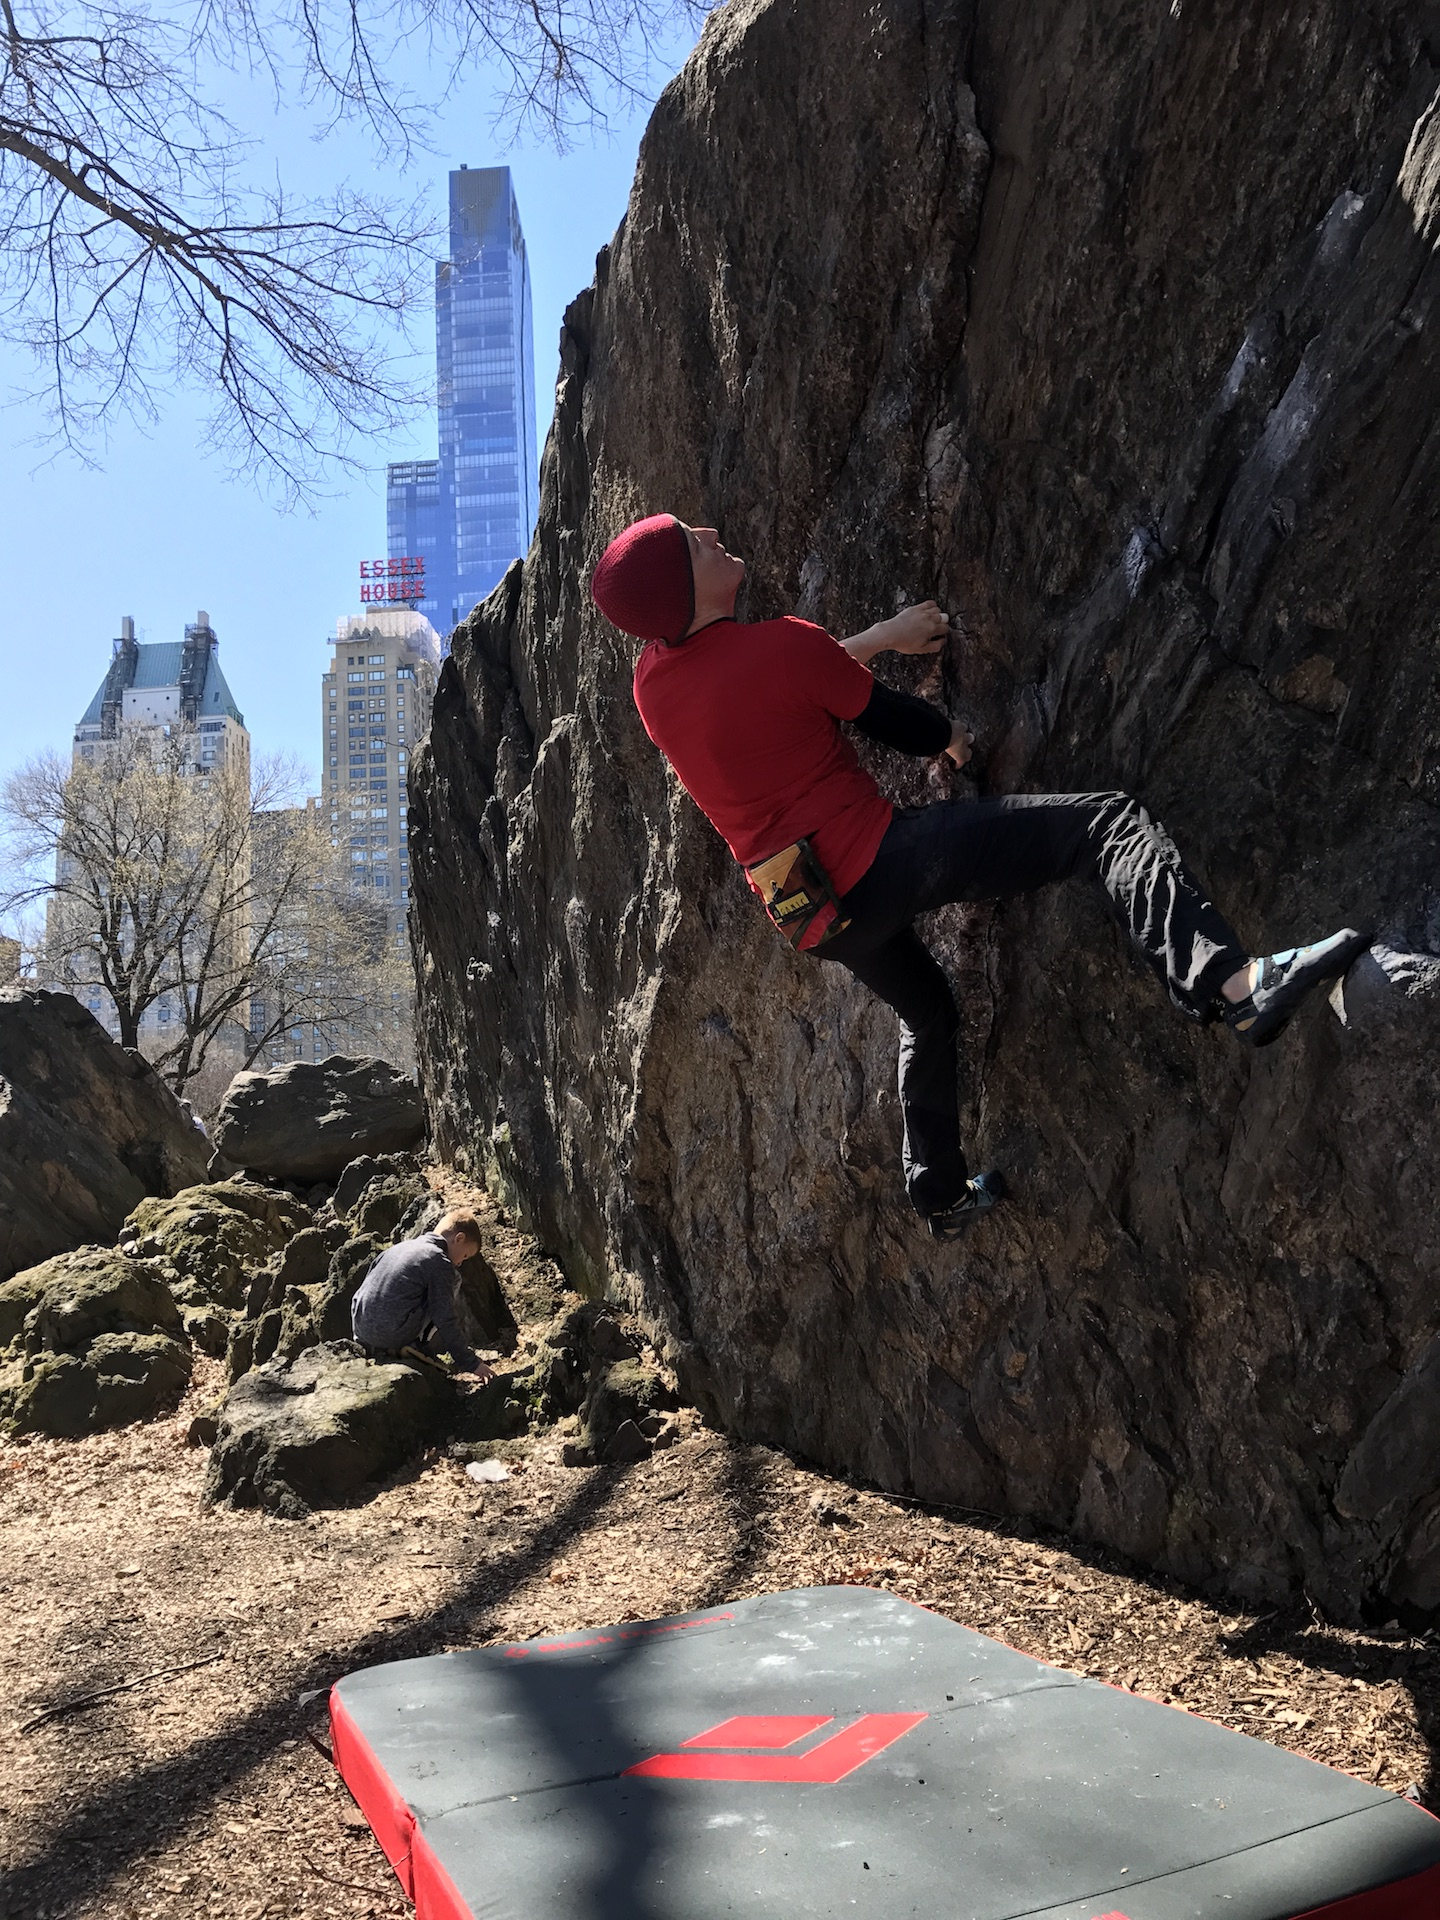 Climbing in the city offers a beautiful backdrop.